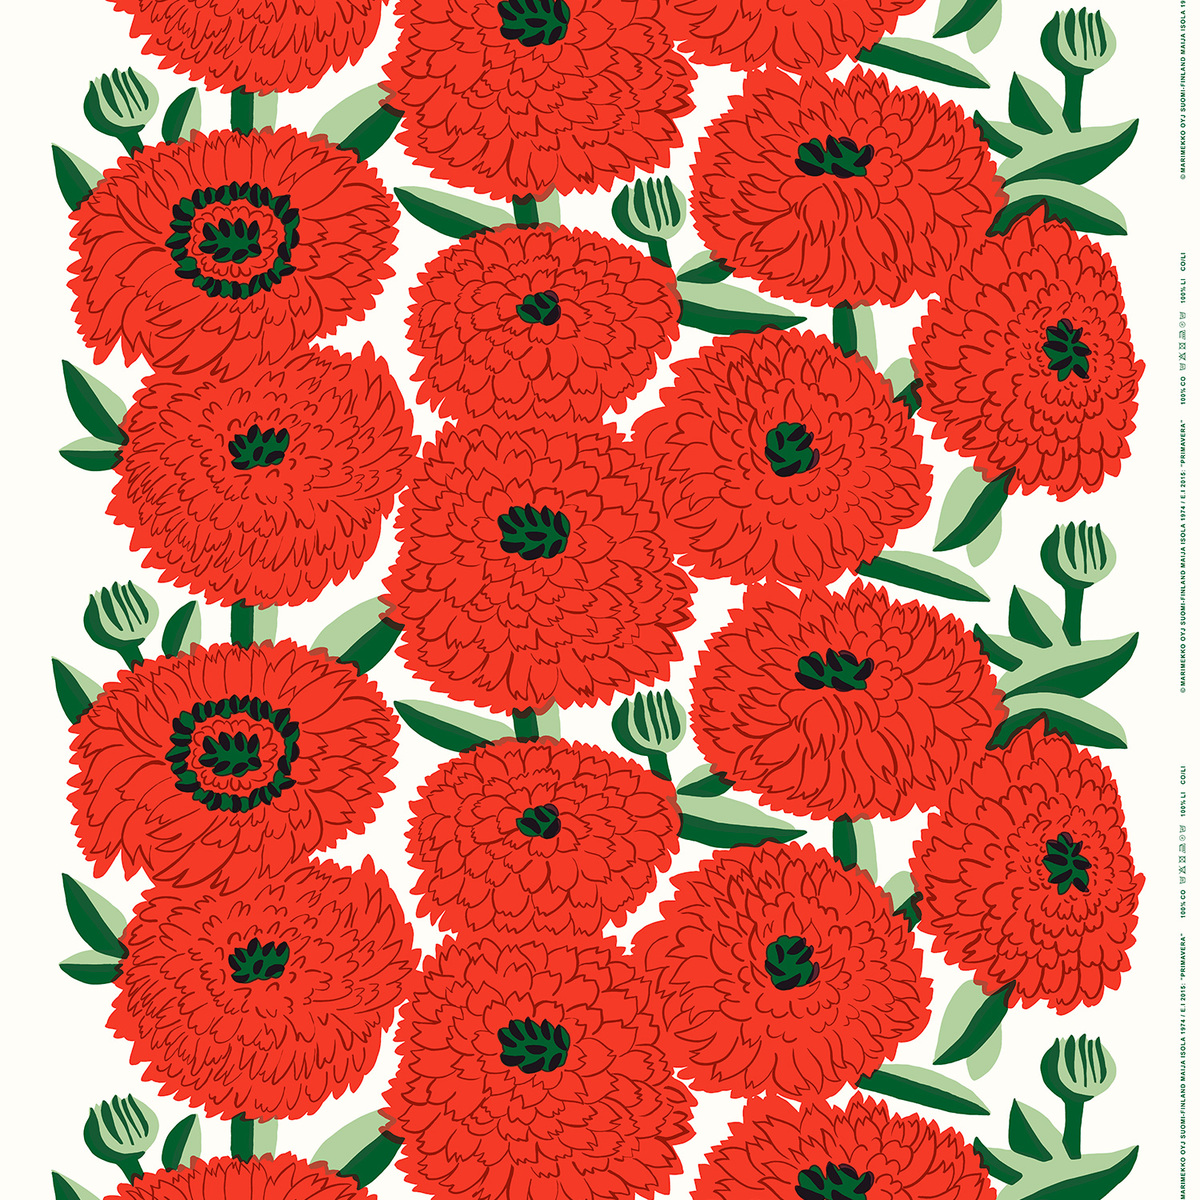 FQ Mini Flowers in White on Red 100/% Cotton Fabric by Copenhagen Print Factory